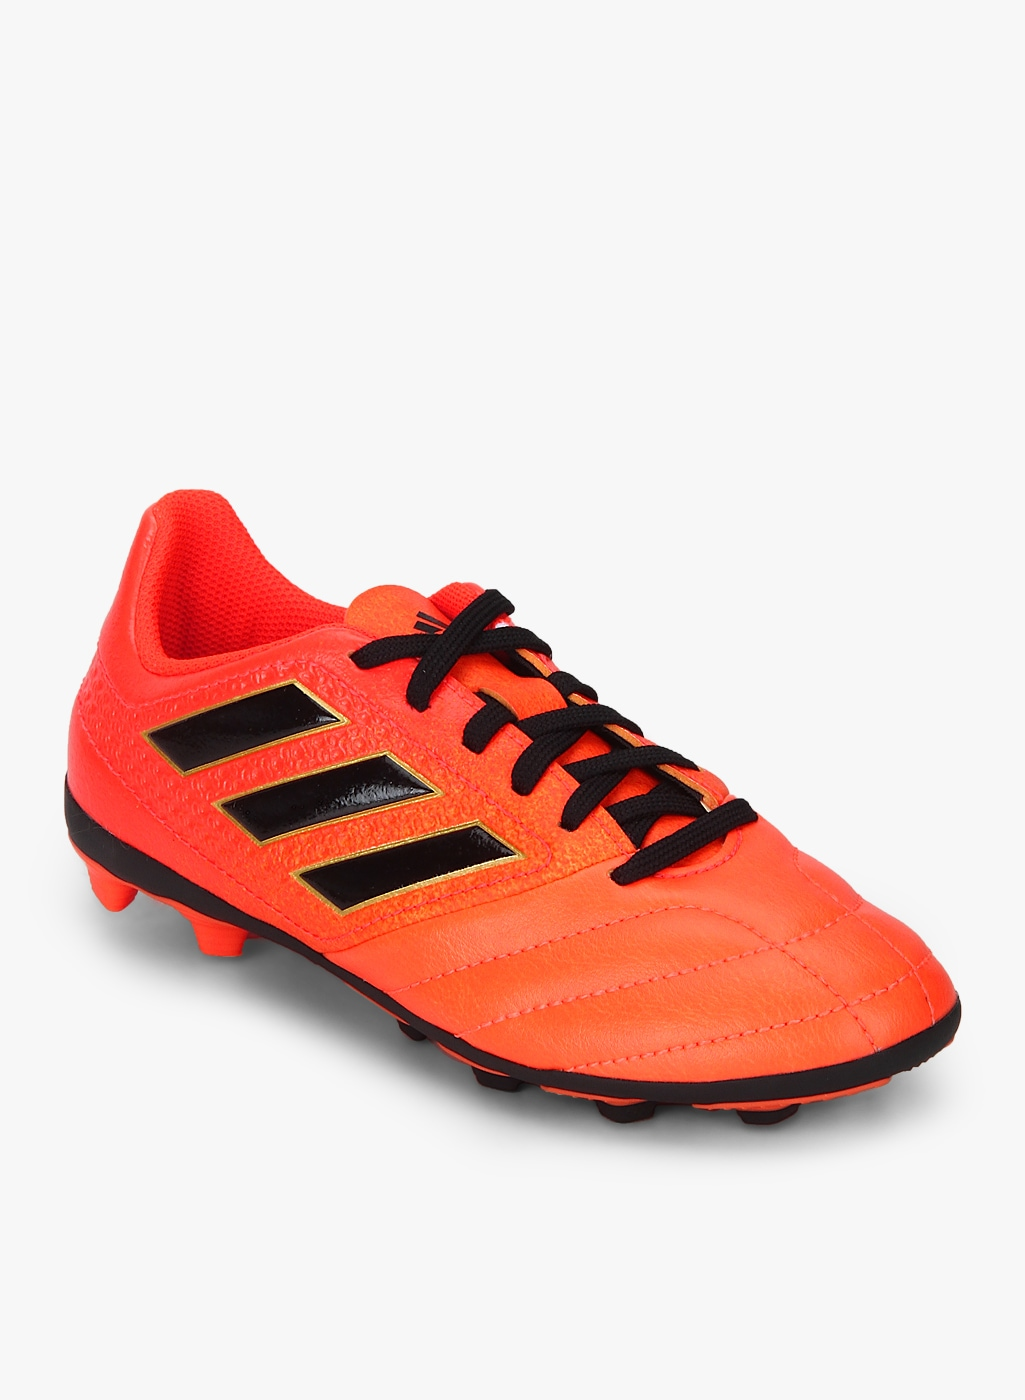 91582d448a7 Adidas Ace 15.4 In J Orange Football Shoes for Boys in India May ...